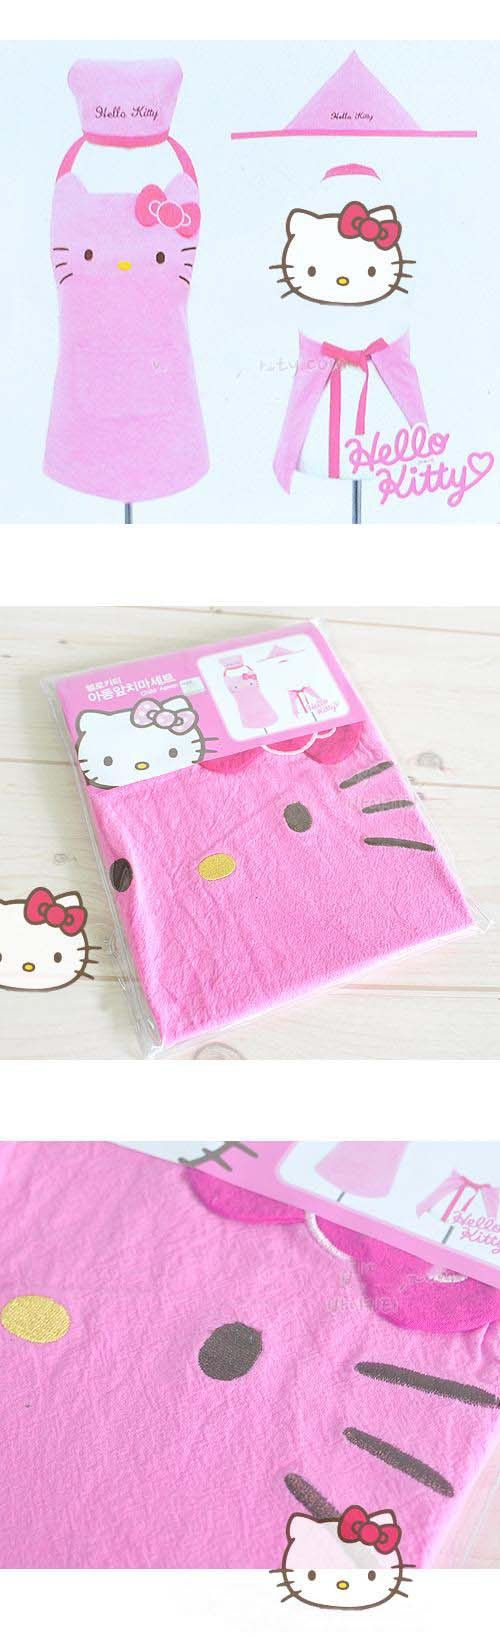 Unique Design Hello Kitty Apron Delicate Housewife Apron Coffee Shop Apron Baking Apron for Sales Girl